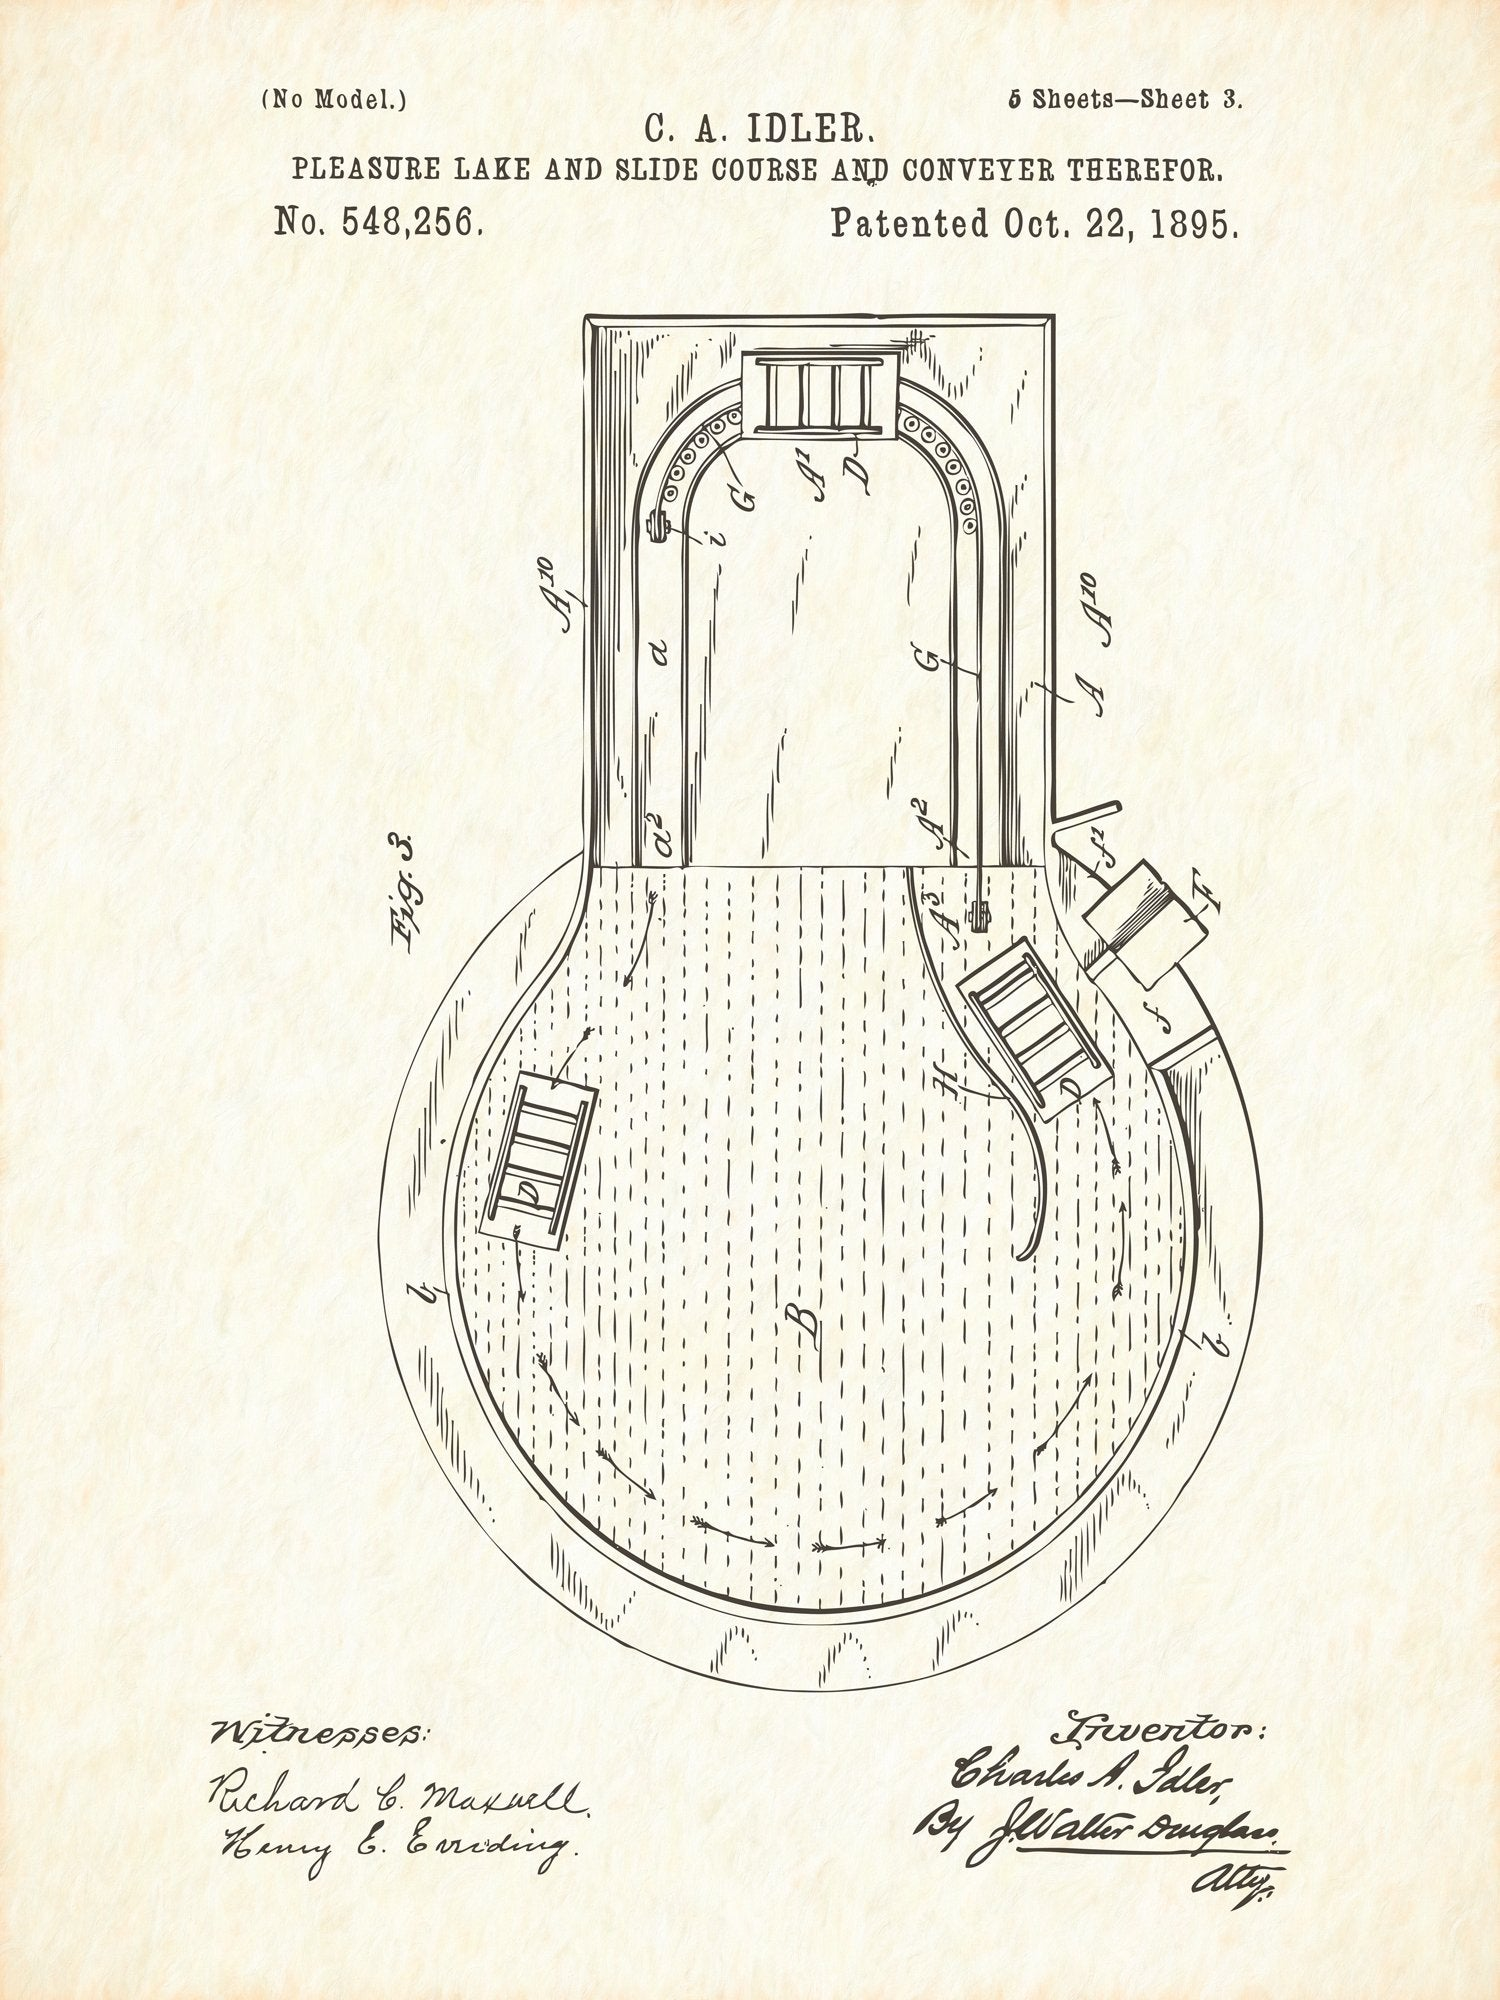 U.S. Patent No. 548256-3 Pleasure Lake and Slide Course and Conveyer Therefor Reworked, Series 1